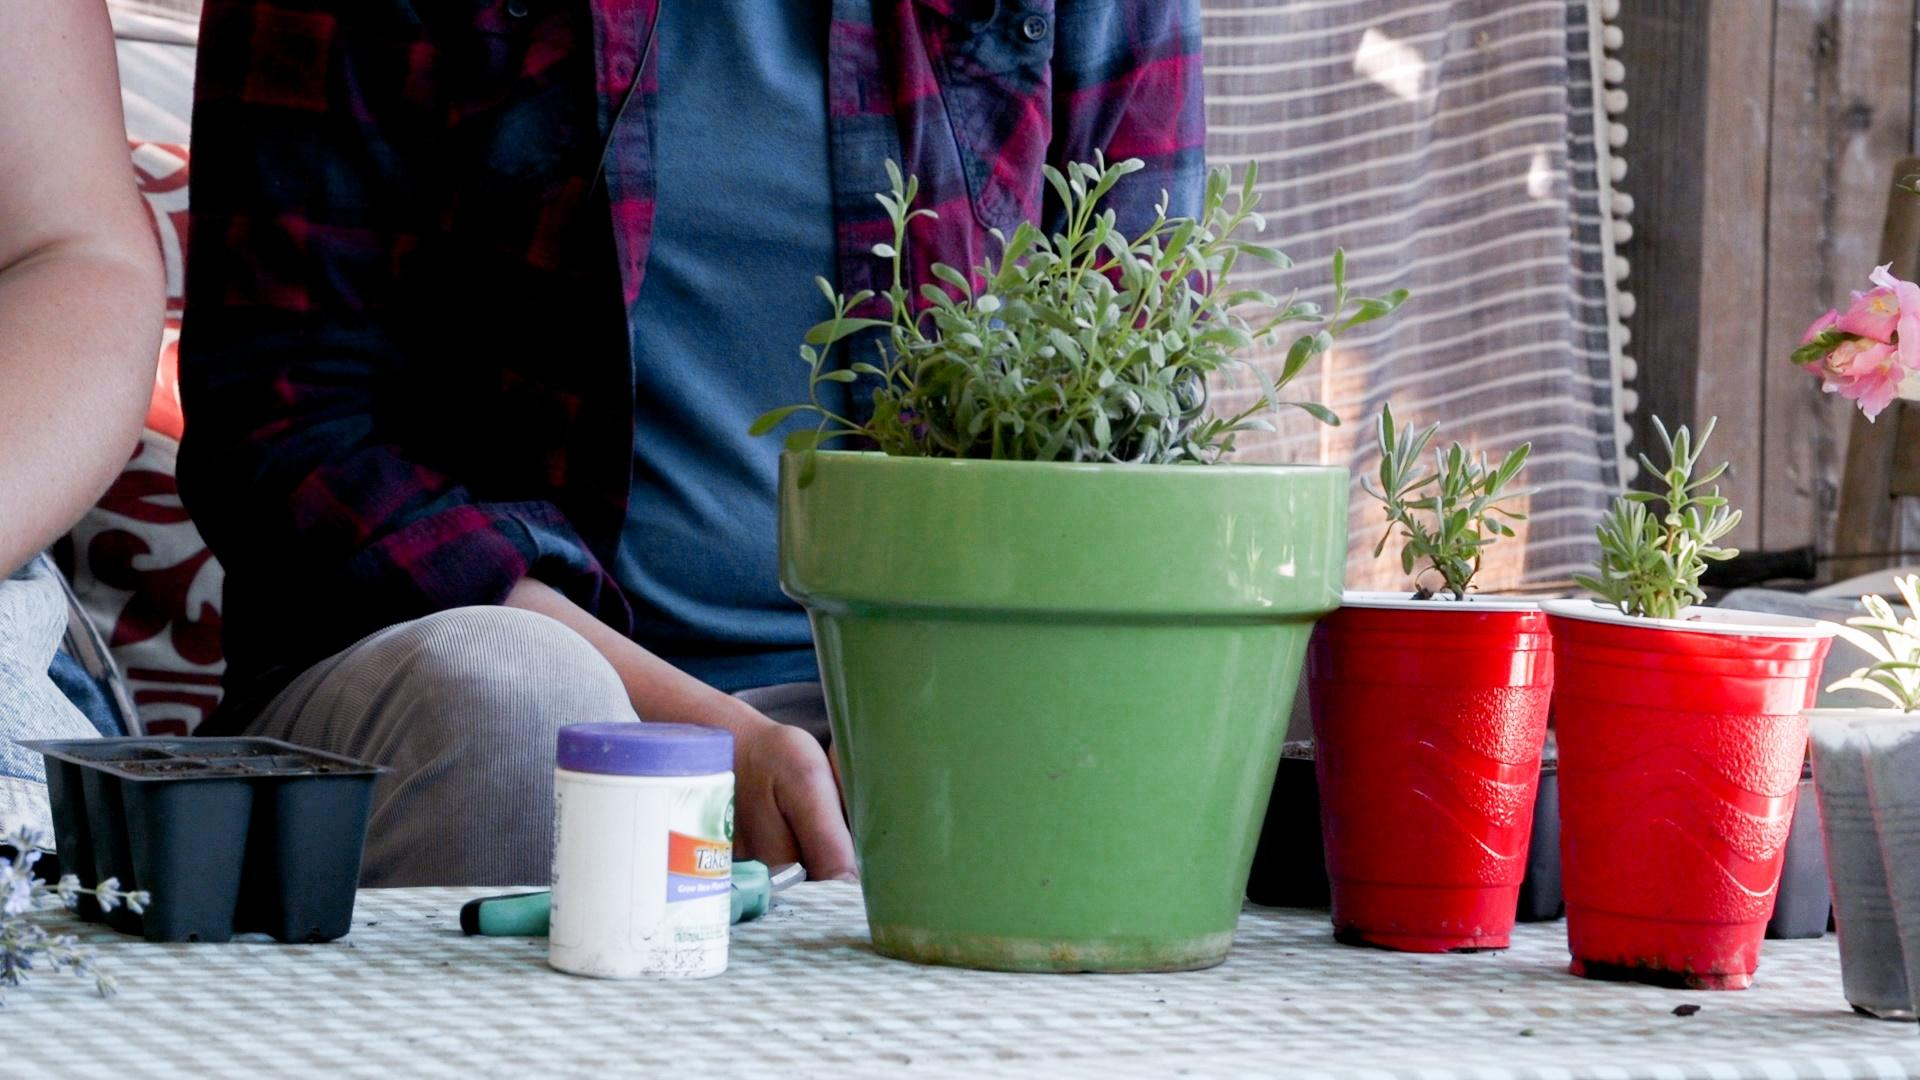 Growing containers, root hormone, scissors and the mother lavender plant.